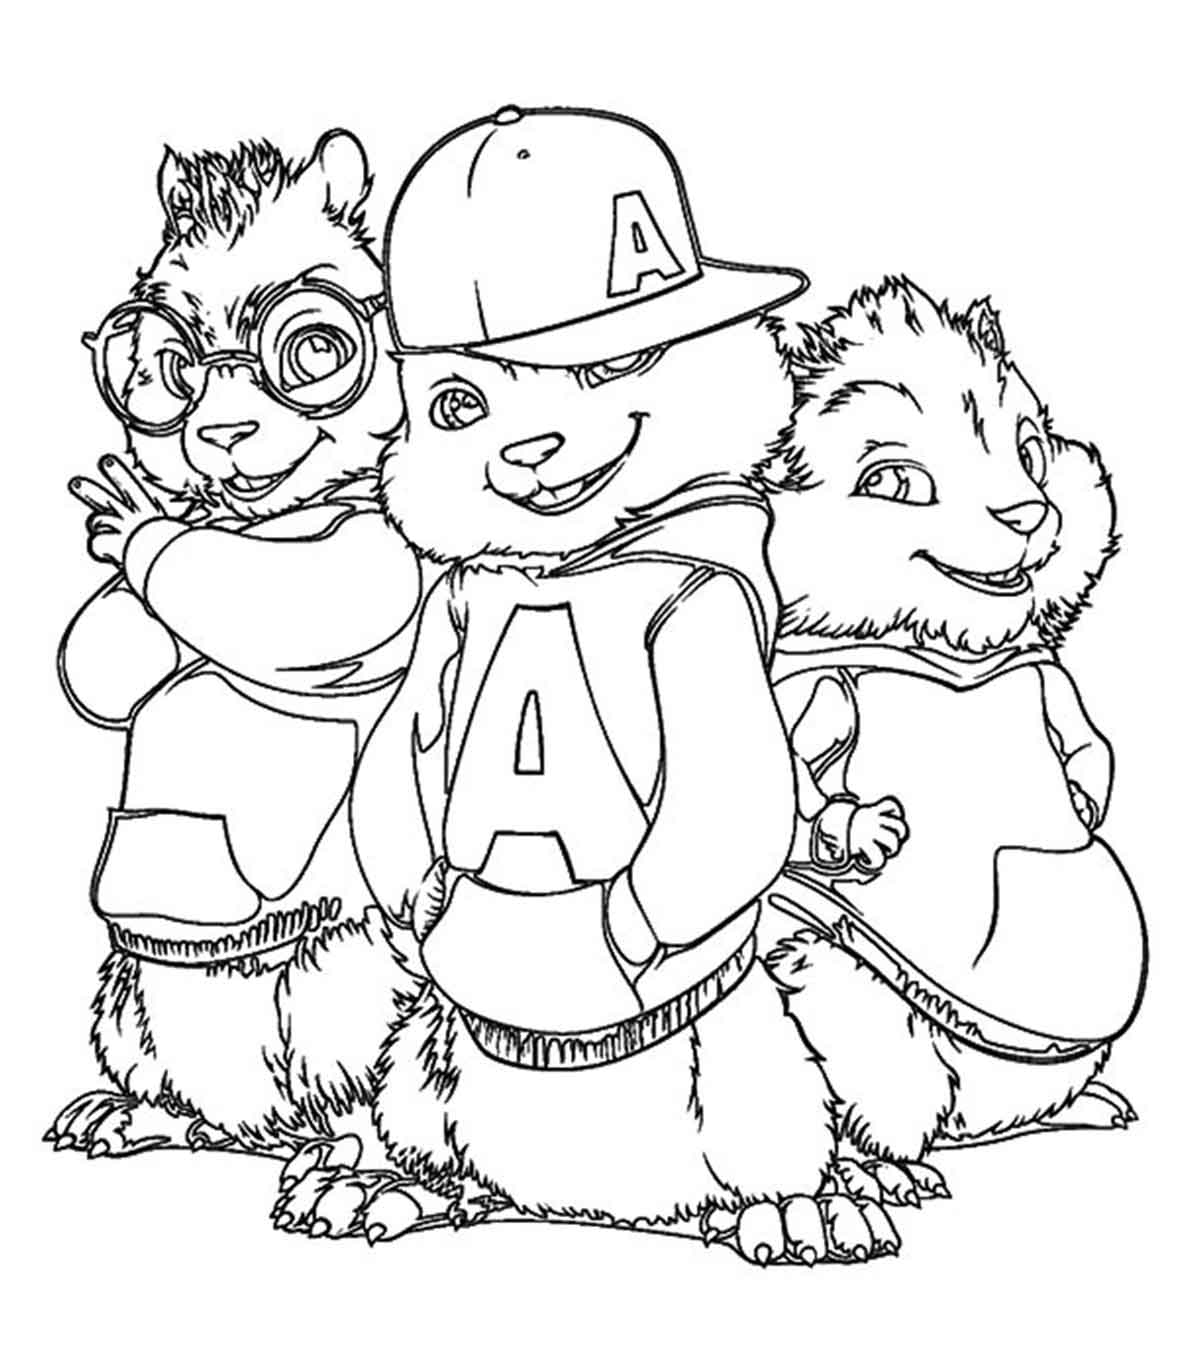 It's just a graphic of Bright Chipmunk Coloring Page